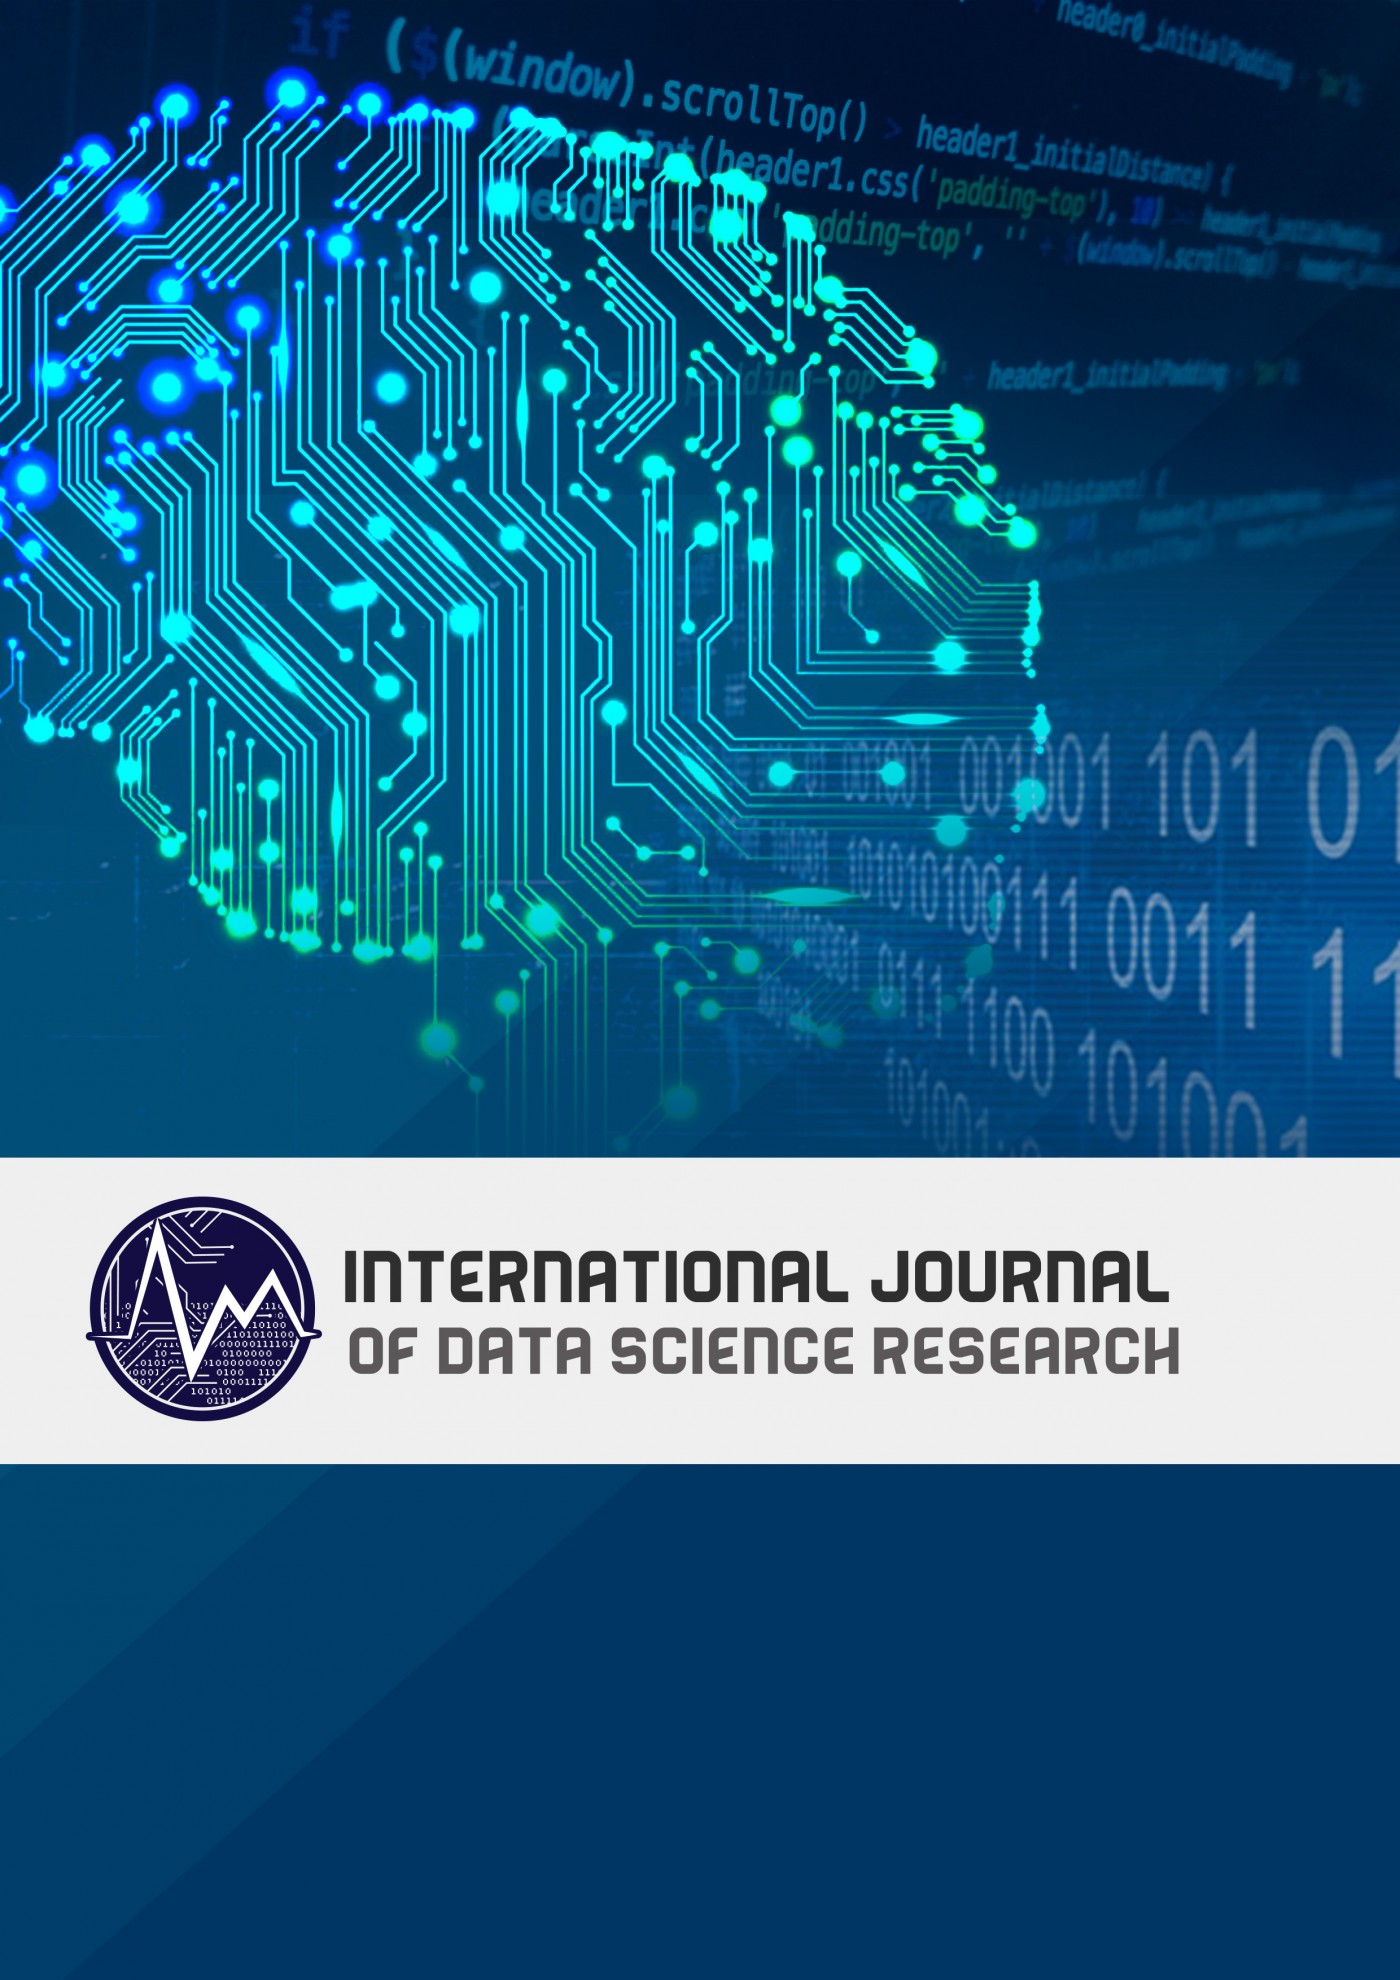 017 Research Paper Cover Issue 58 En Us Data Science Papers Sensational Pdf 2018 1400